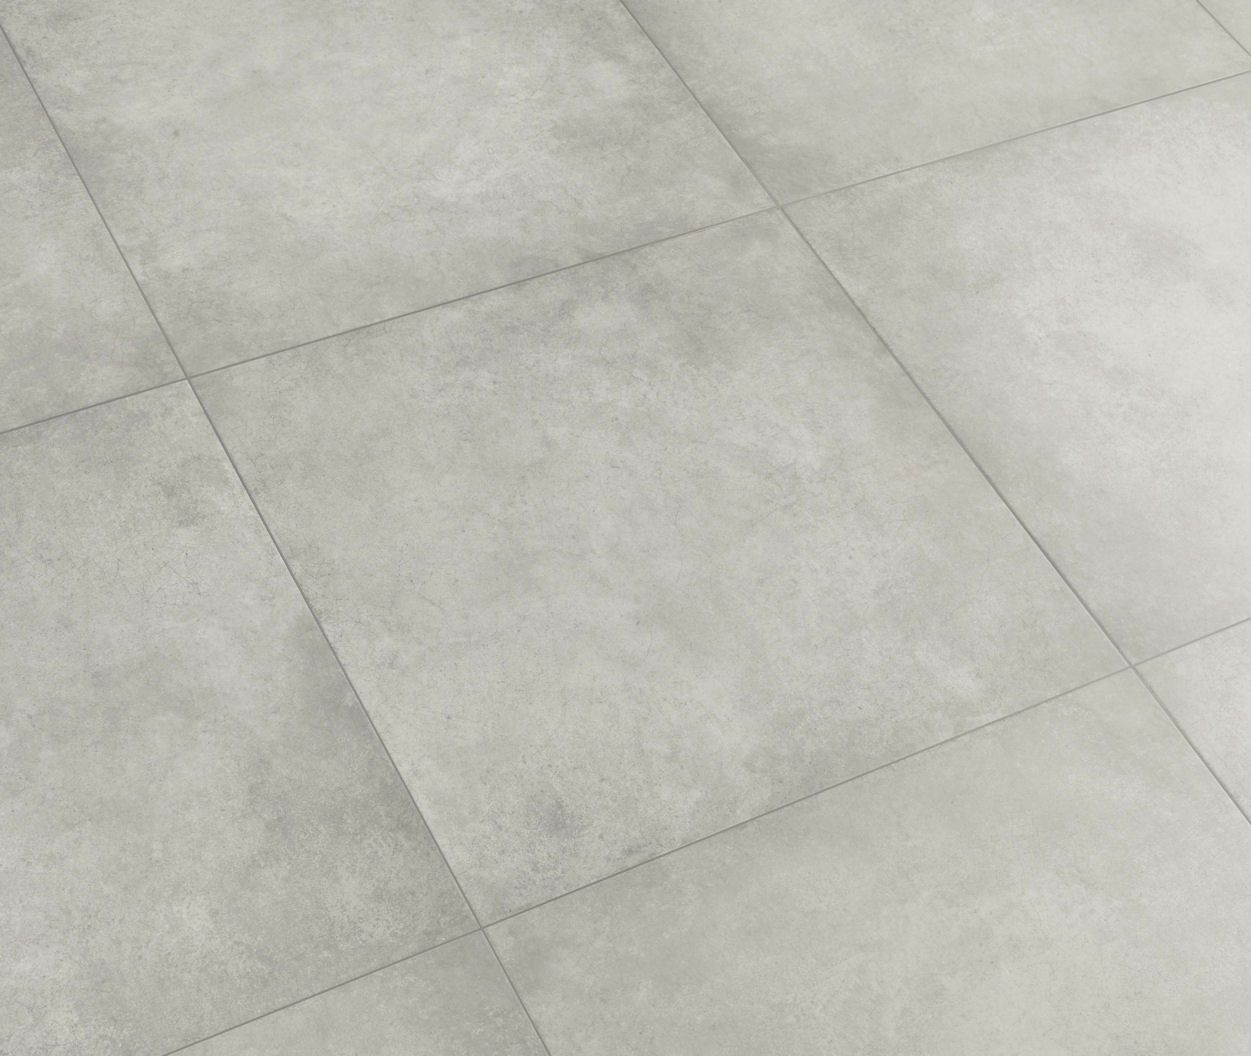 New York Brooklyn Porcelain Tiles Flooring Mandarin Stone Stone Tile Flooring